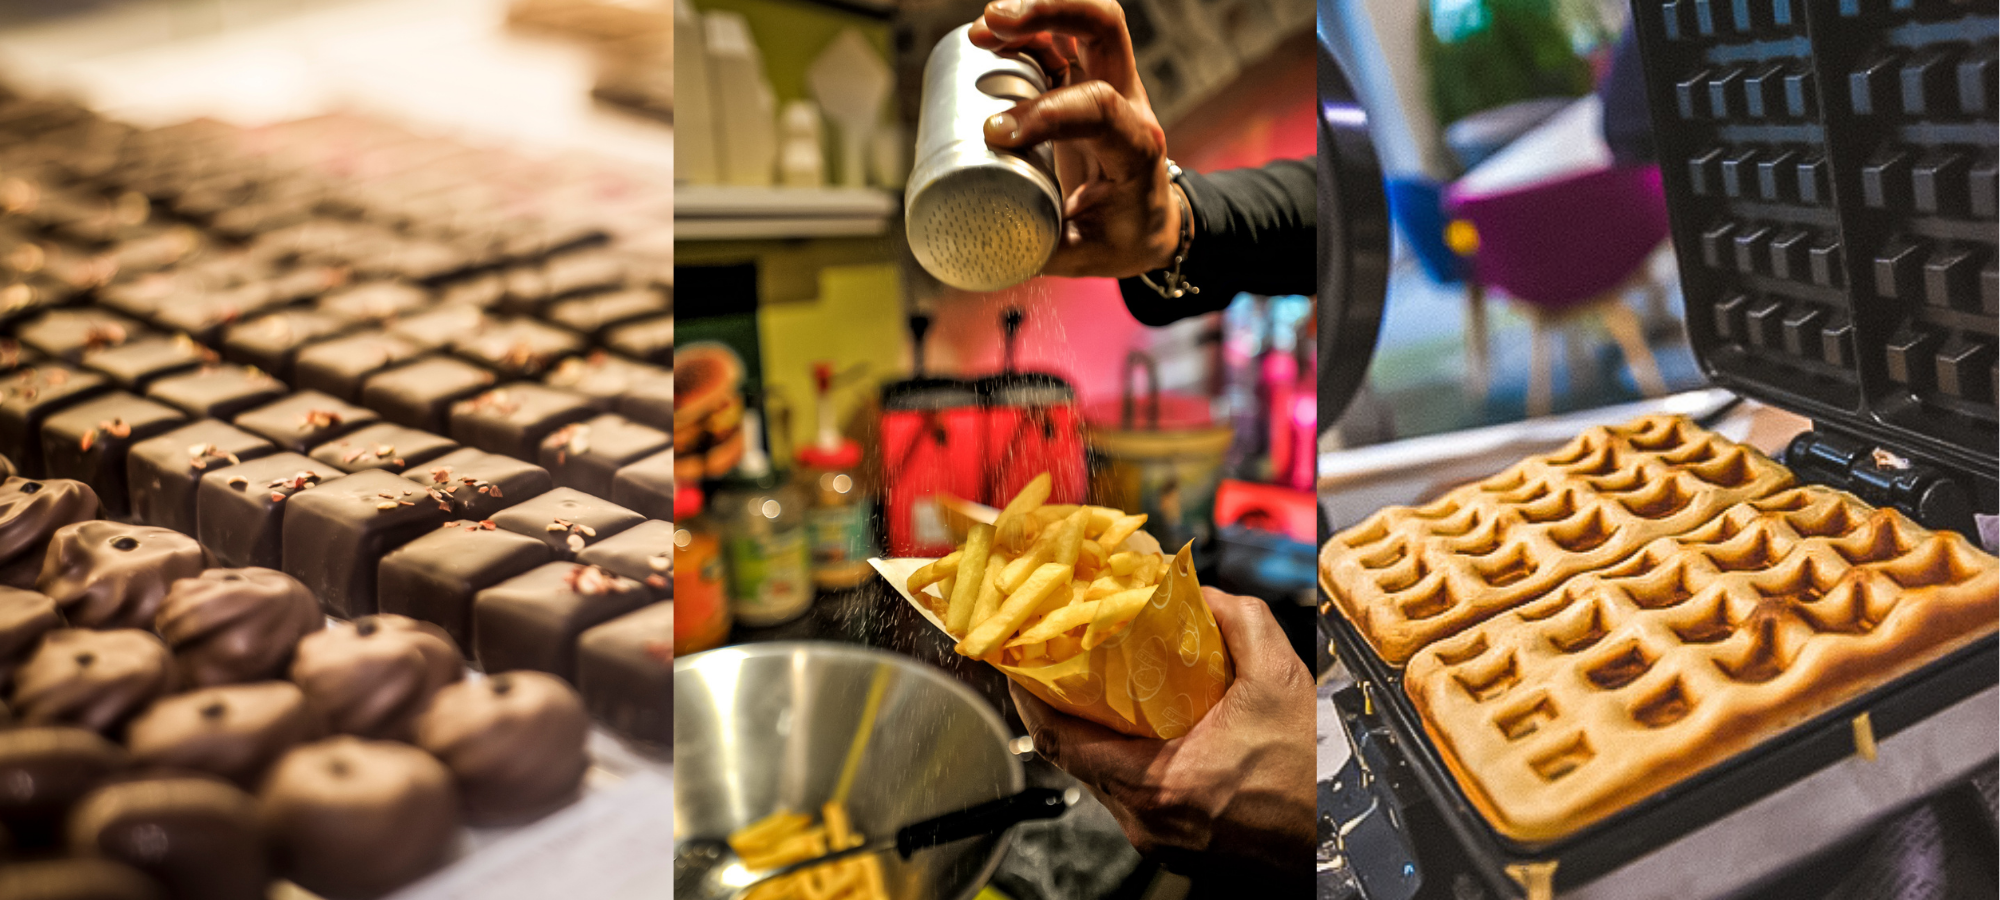 Left: Belgian chocolate. Middle: fries at the Belgian Frietmuseum. Right: Belgian waffles